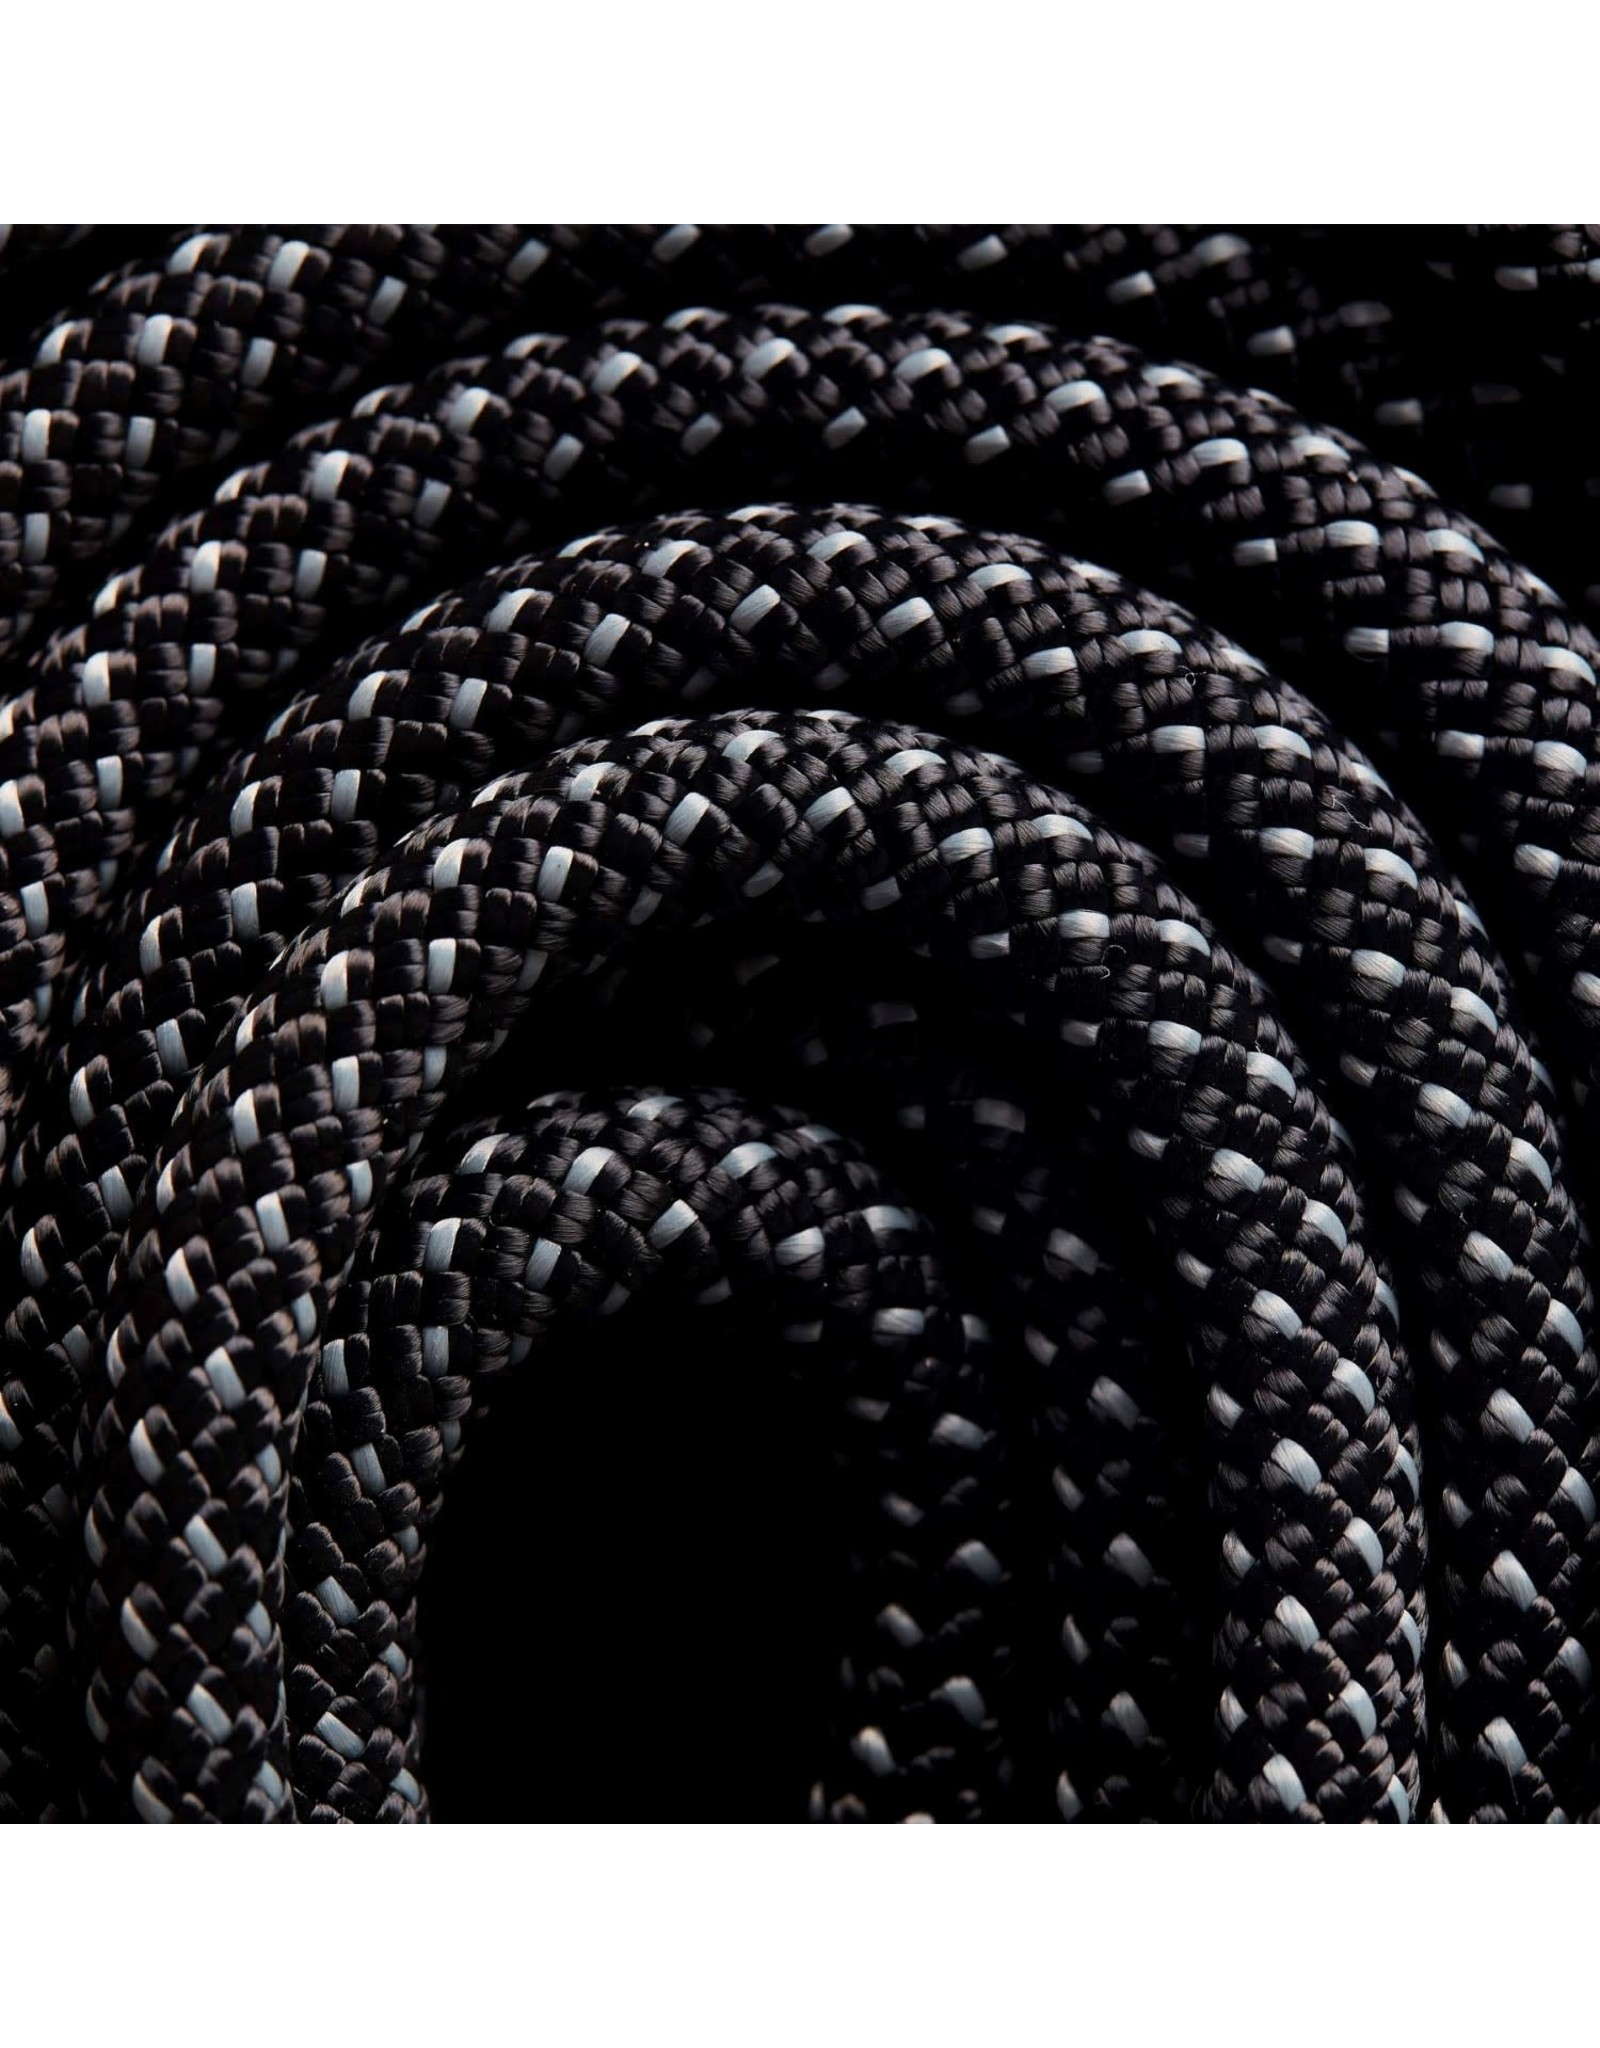 Black Diamond Black Diamond Static Rope - 10 mm